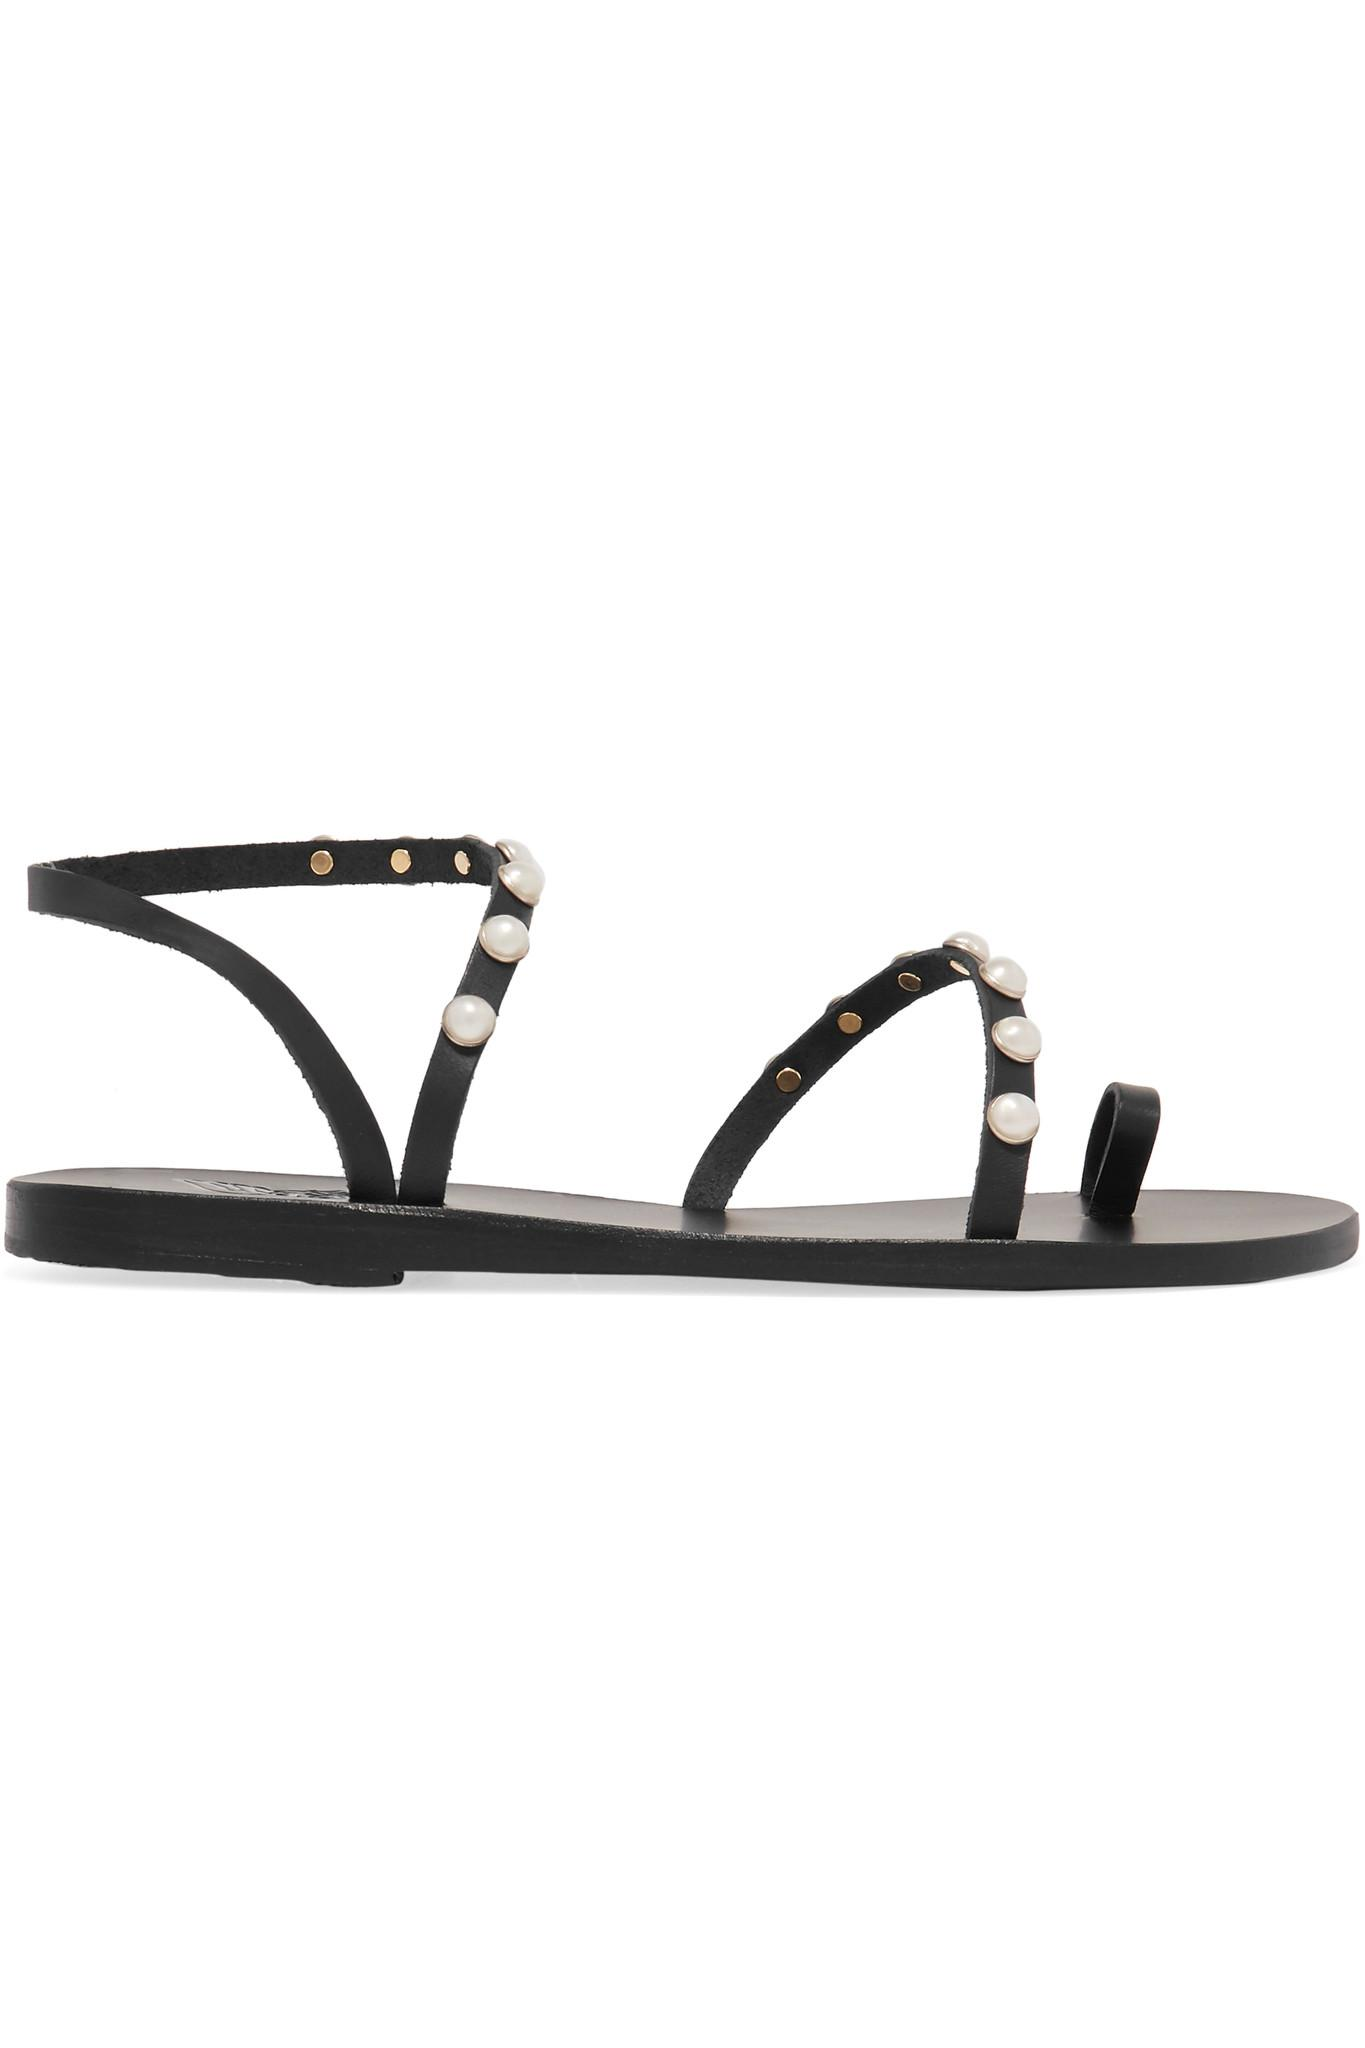 Ancient Greek Sandals Apli Eleftheria Black Leather Sandal With Pearls Latest Discount Find Great Online Free Shipping For Nice Footlocker Pictures Online Outlet Clearance XfoJmco